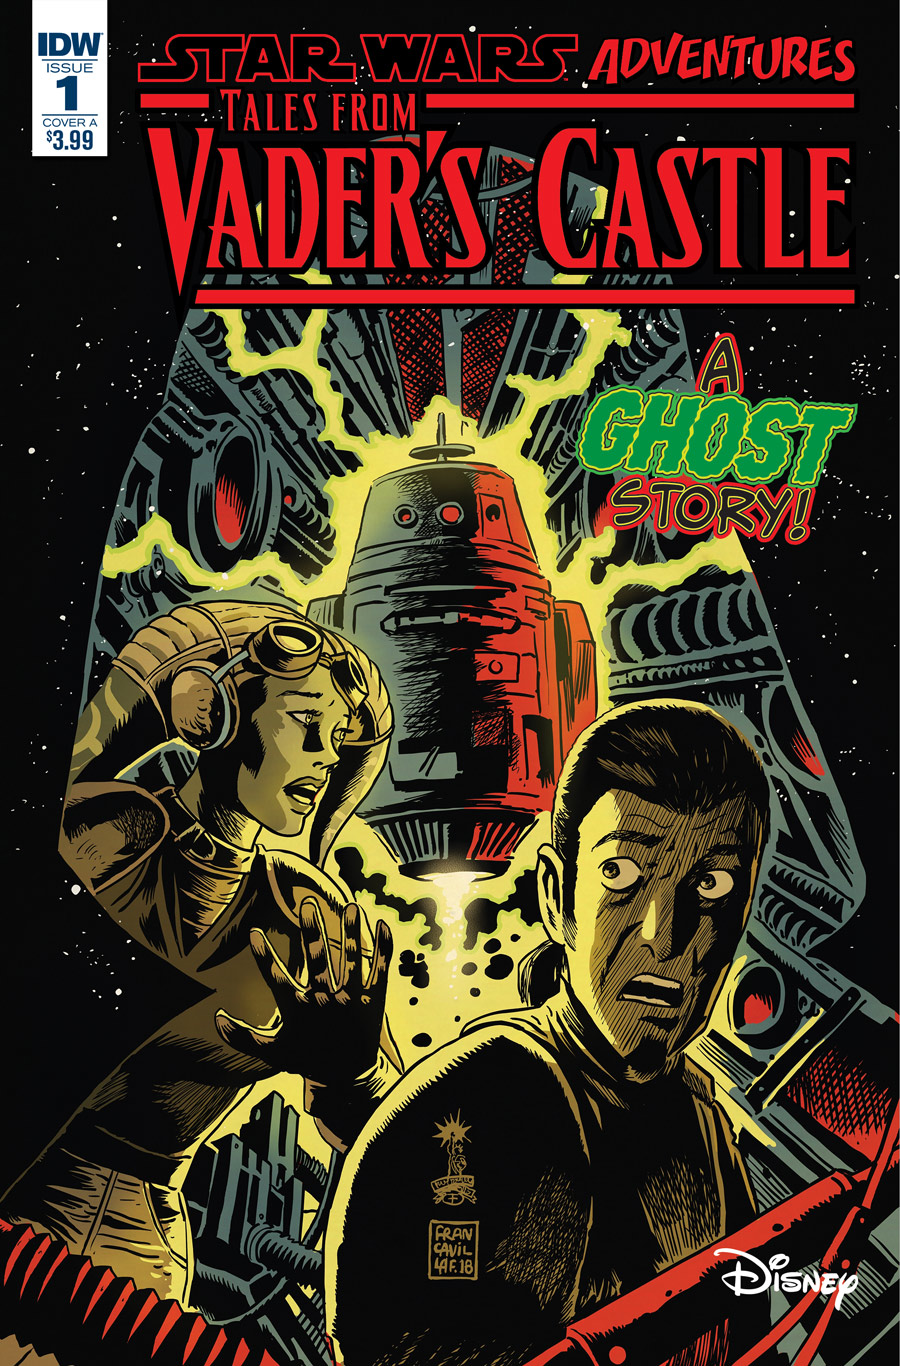 The cover of Tales from Vader's Castle #1.